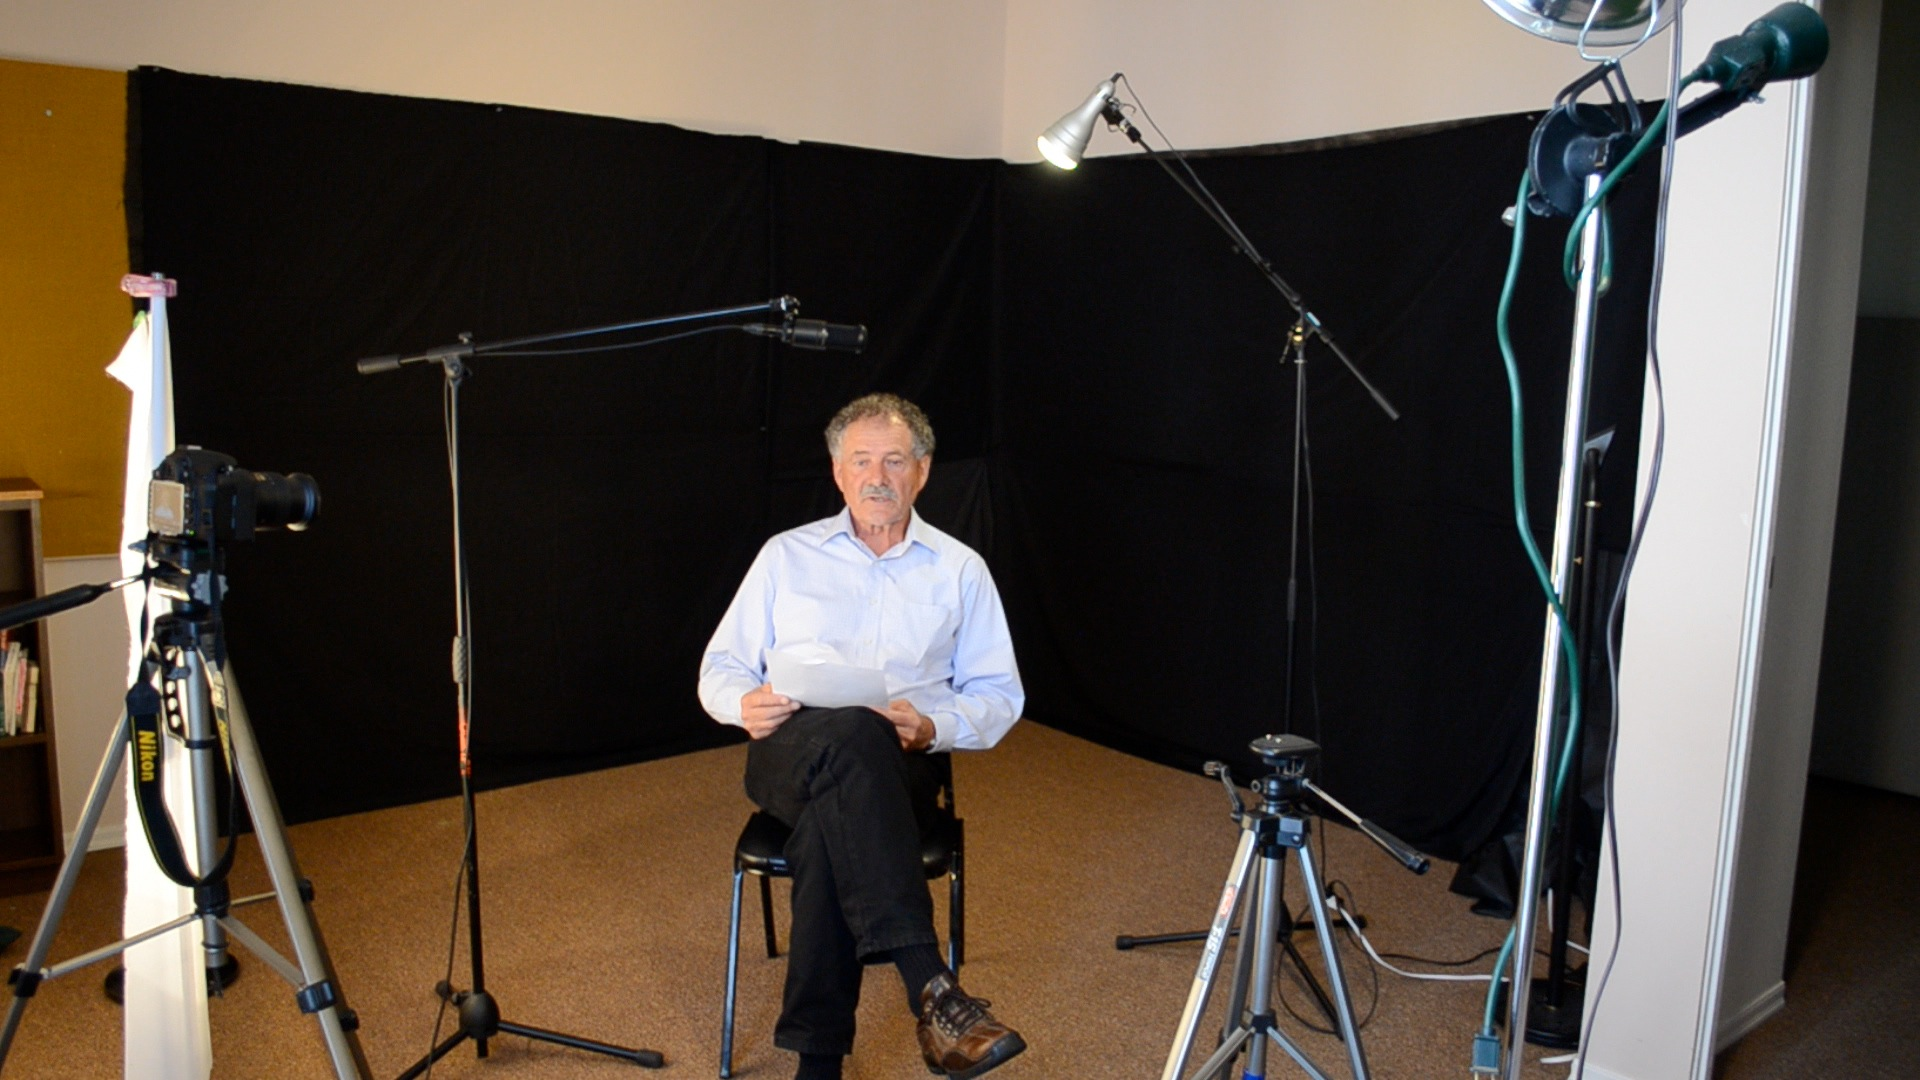 getting started creating videos for your church re think worship using a studio setup